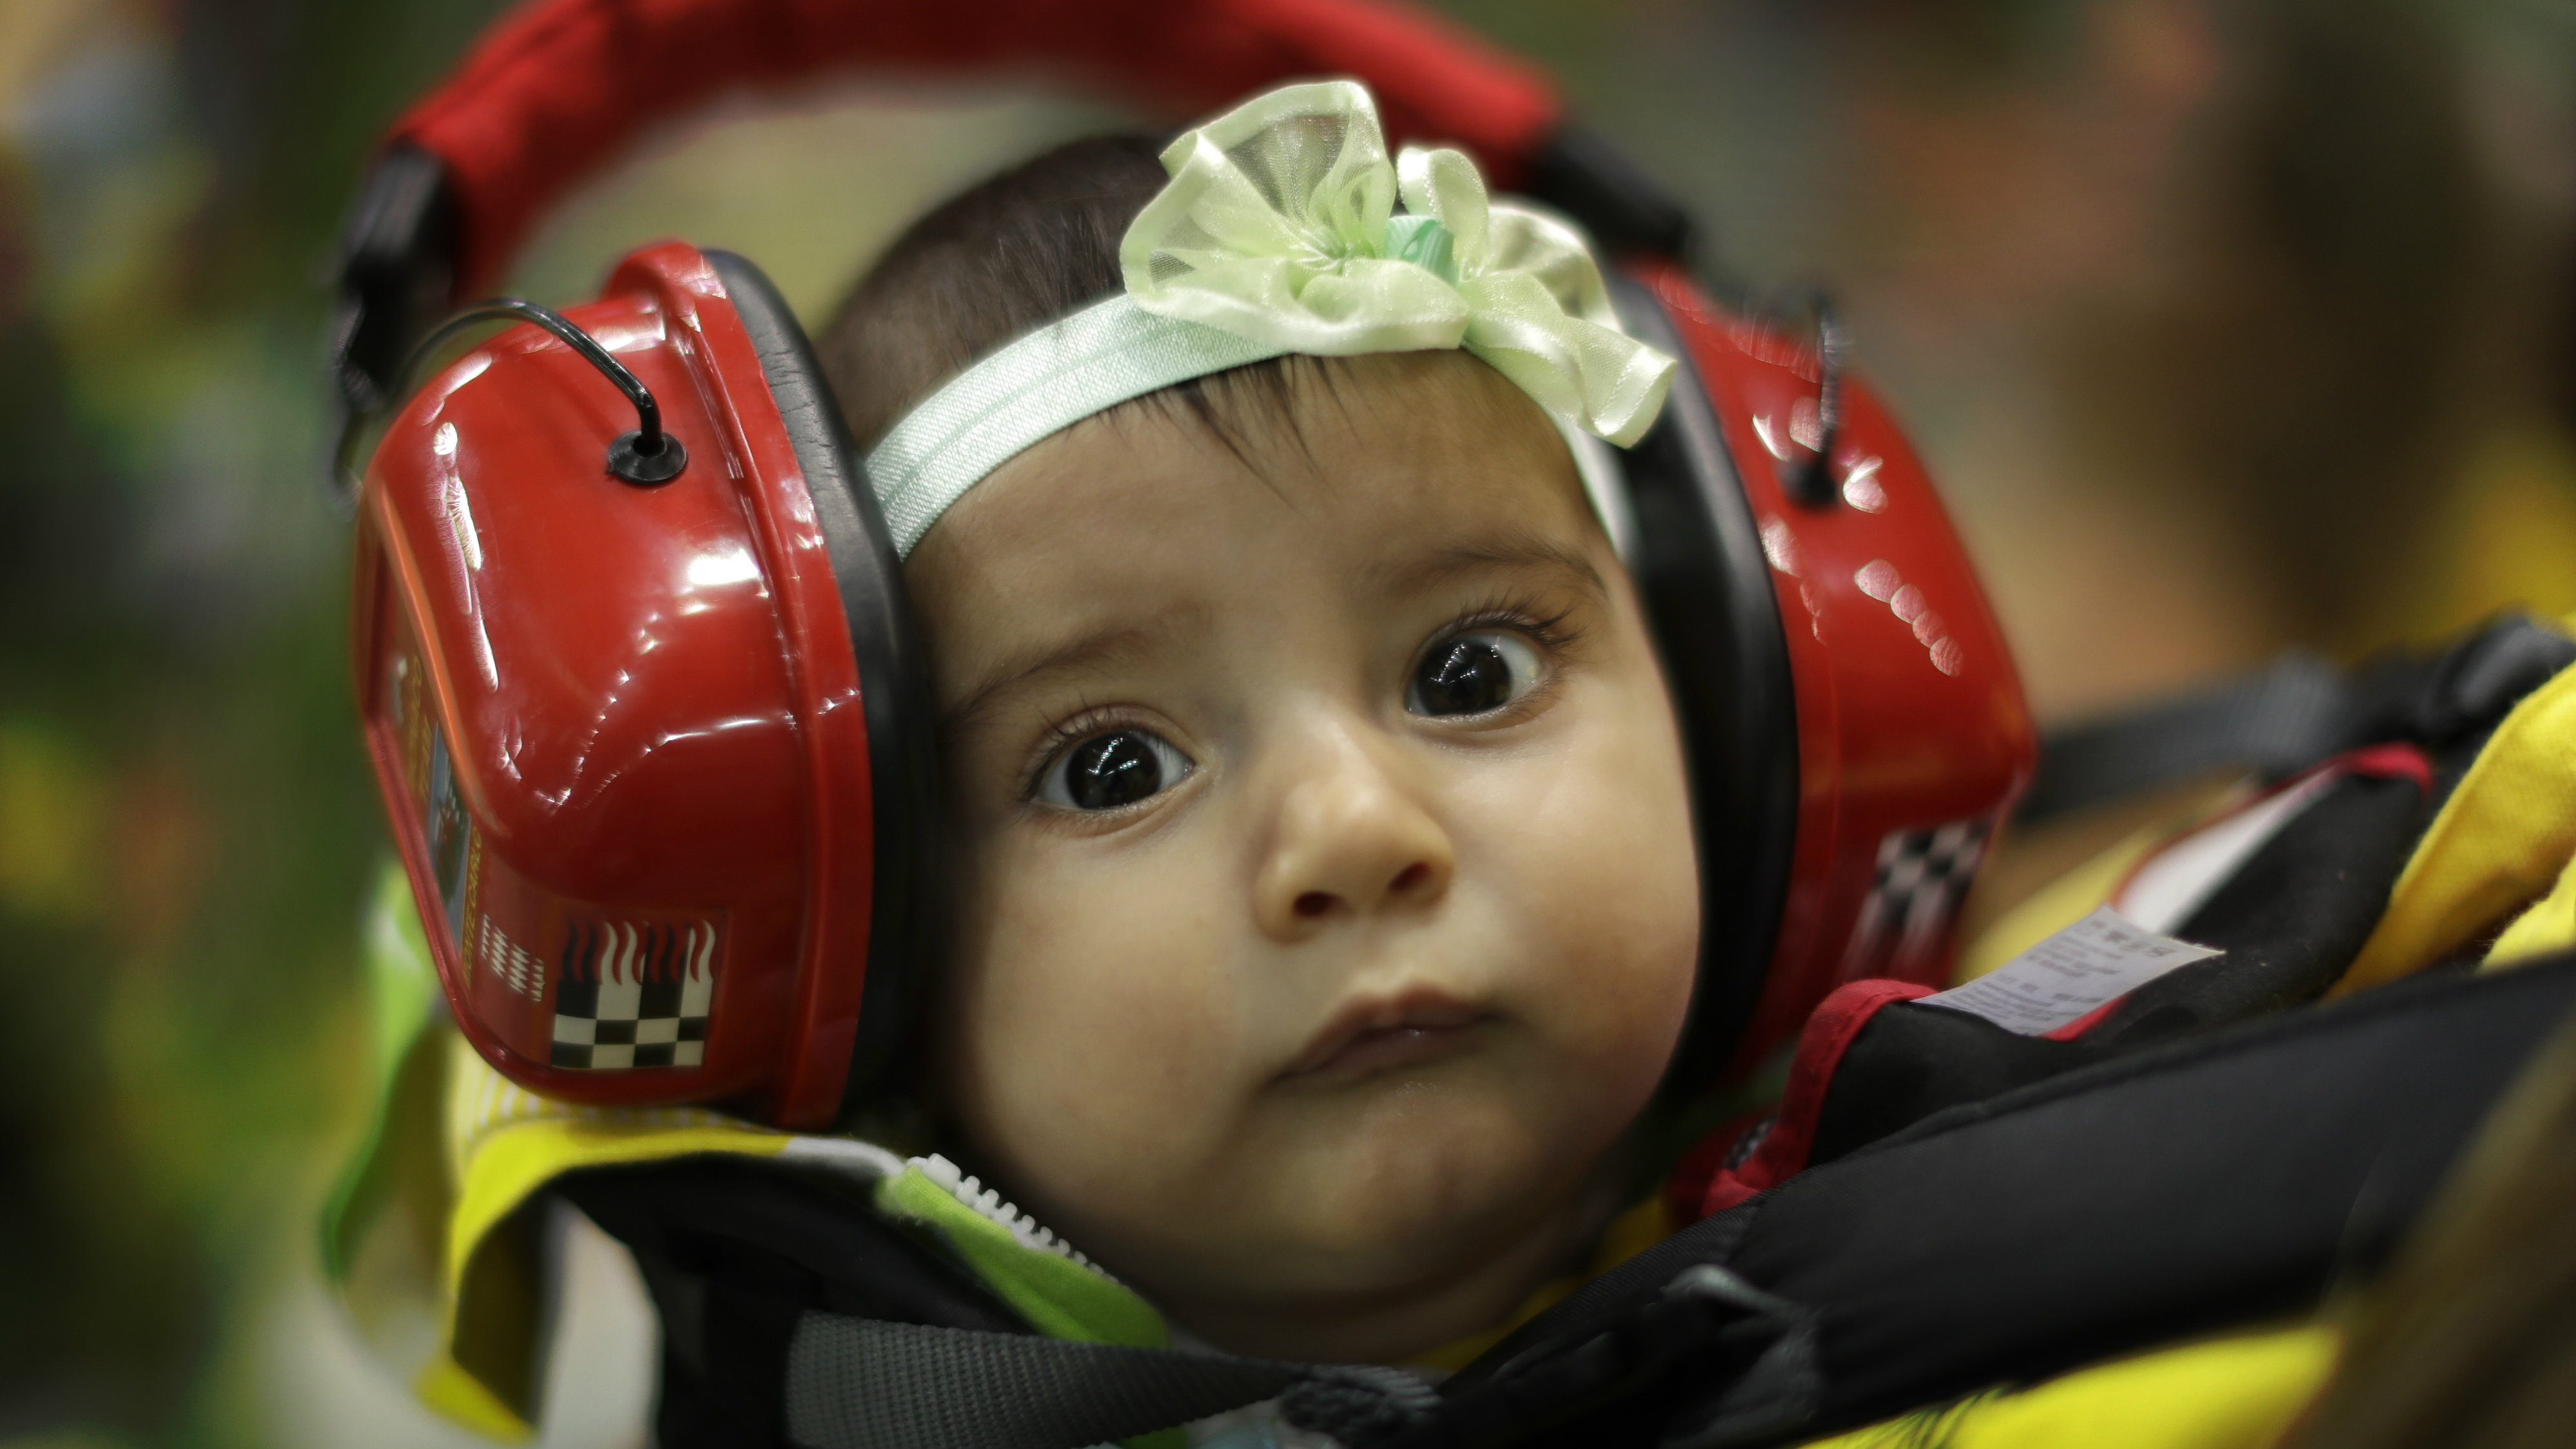 A baby girl hanging in a sling wears ear protectors